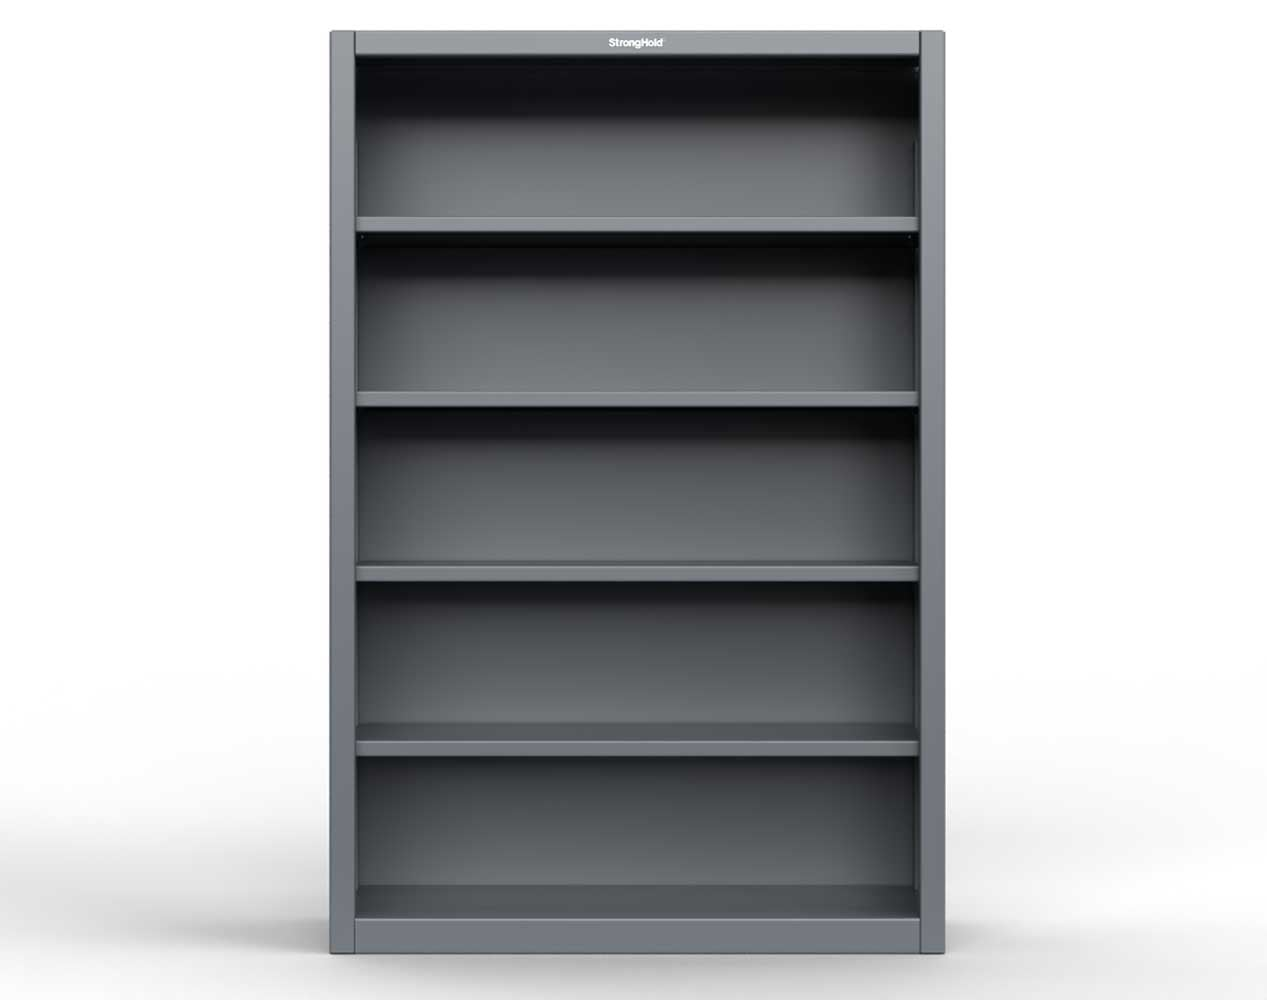 Extra Heavy Duty 12 GA Closed Shelving Unit with 4 Shelves – 36 In. W x 14 In. D x 72 In. H